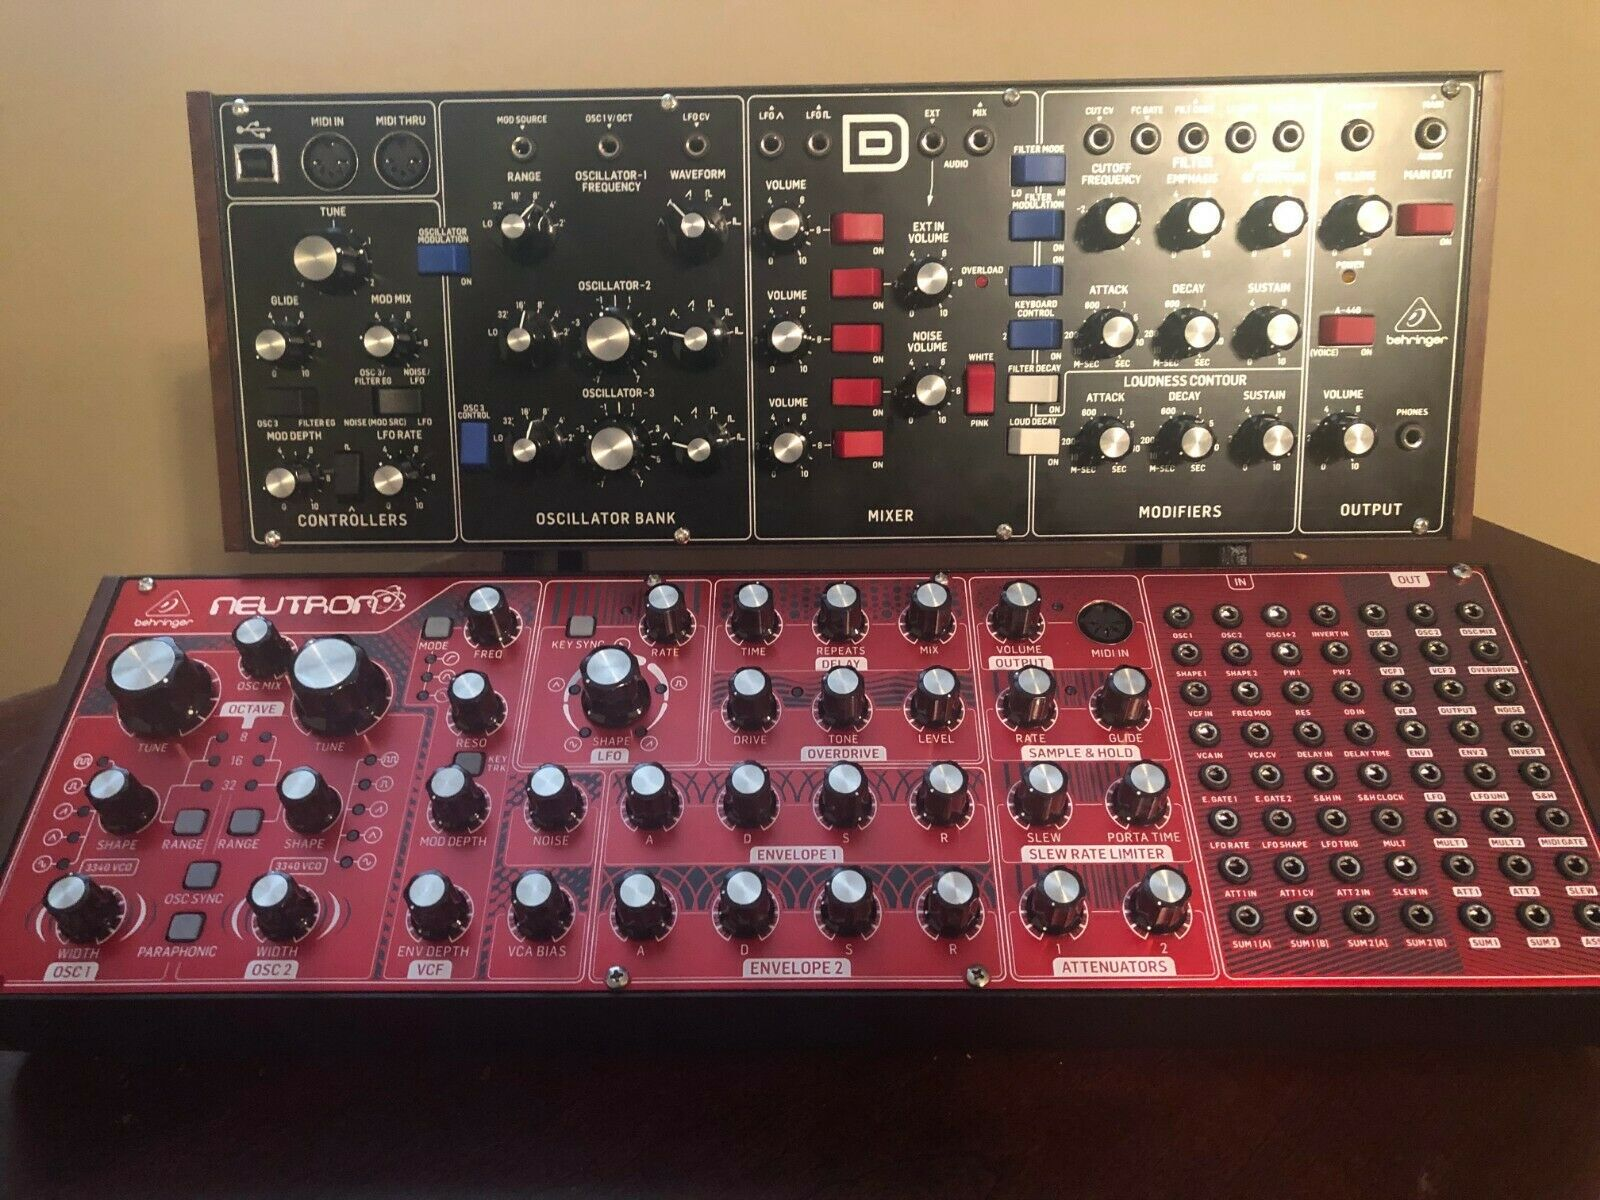 3Dsynth Behringer Model D and Neutron Stand